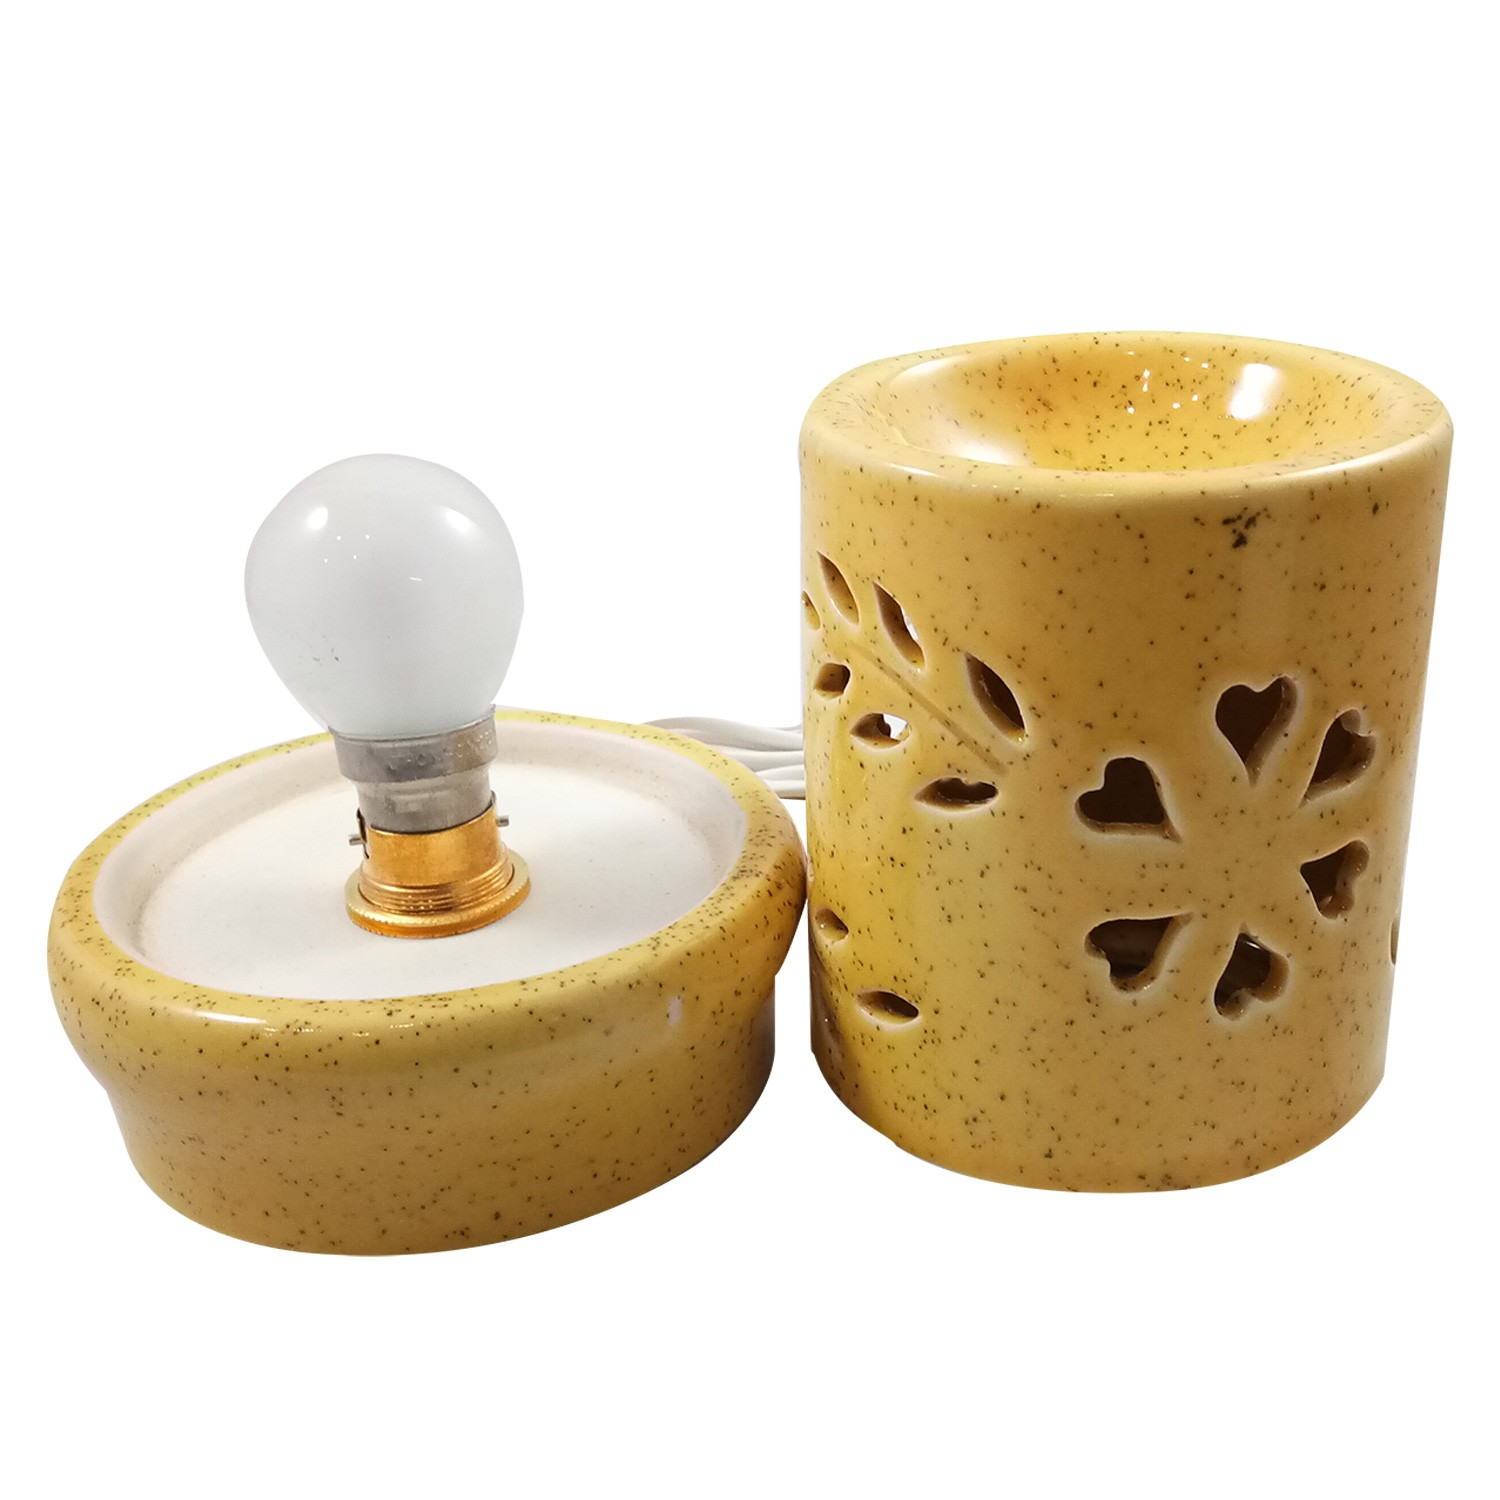 Handmade Ceramic Yellow Ethnic Electric Aroma Diffuser Oil Burner with Lavender Fragrance Oil | Good Quality Aromatherapy Incense Oil Warmer Qty 1